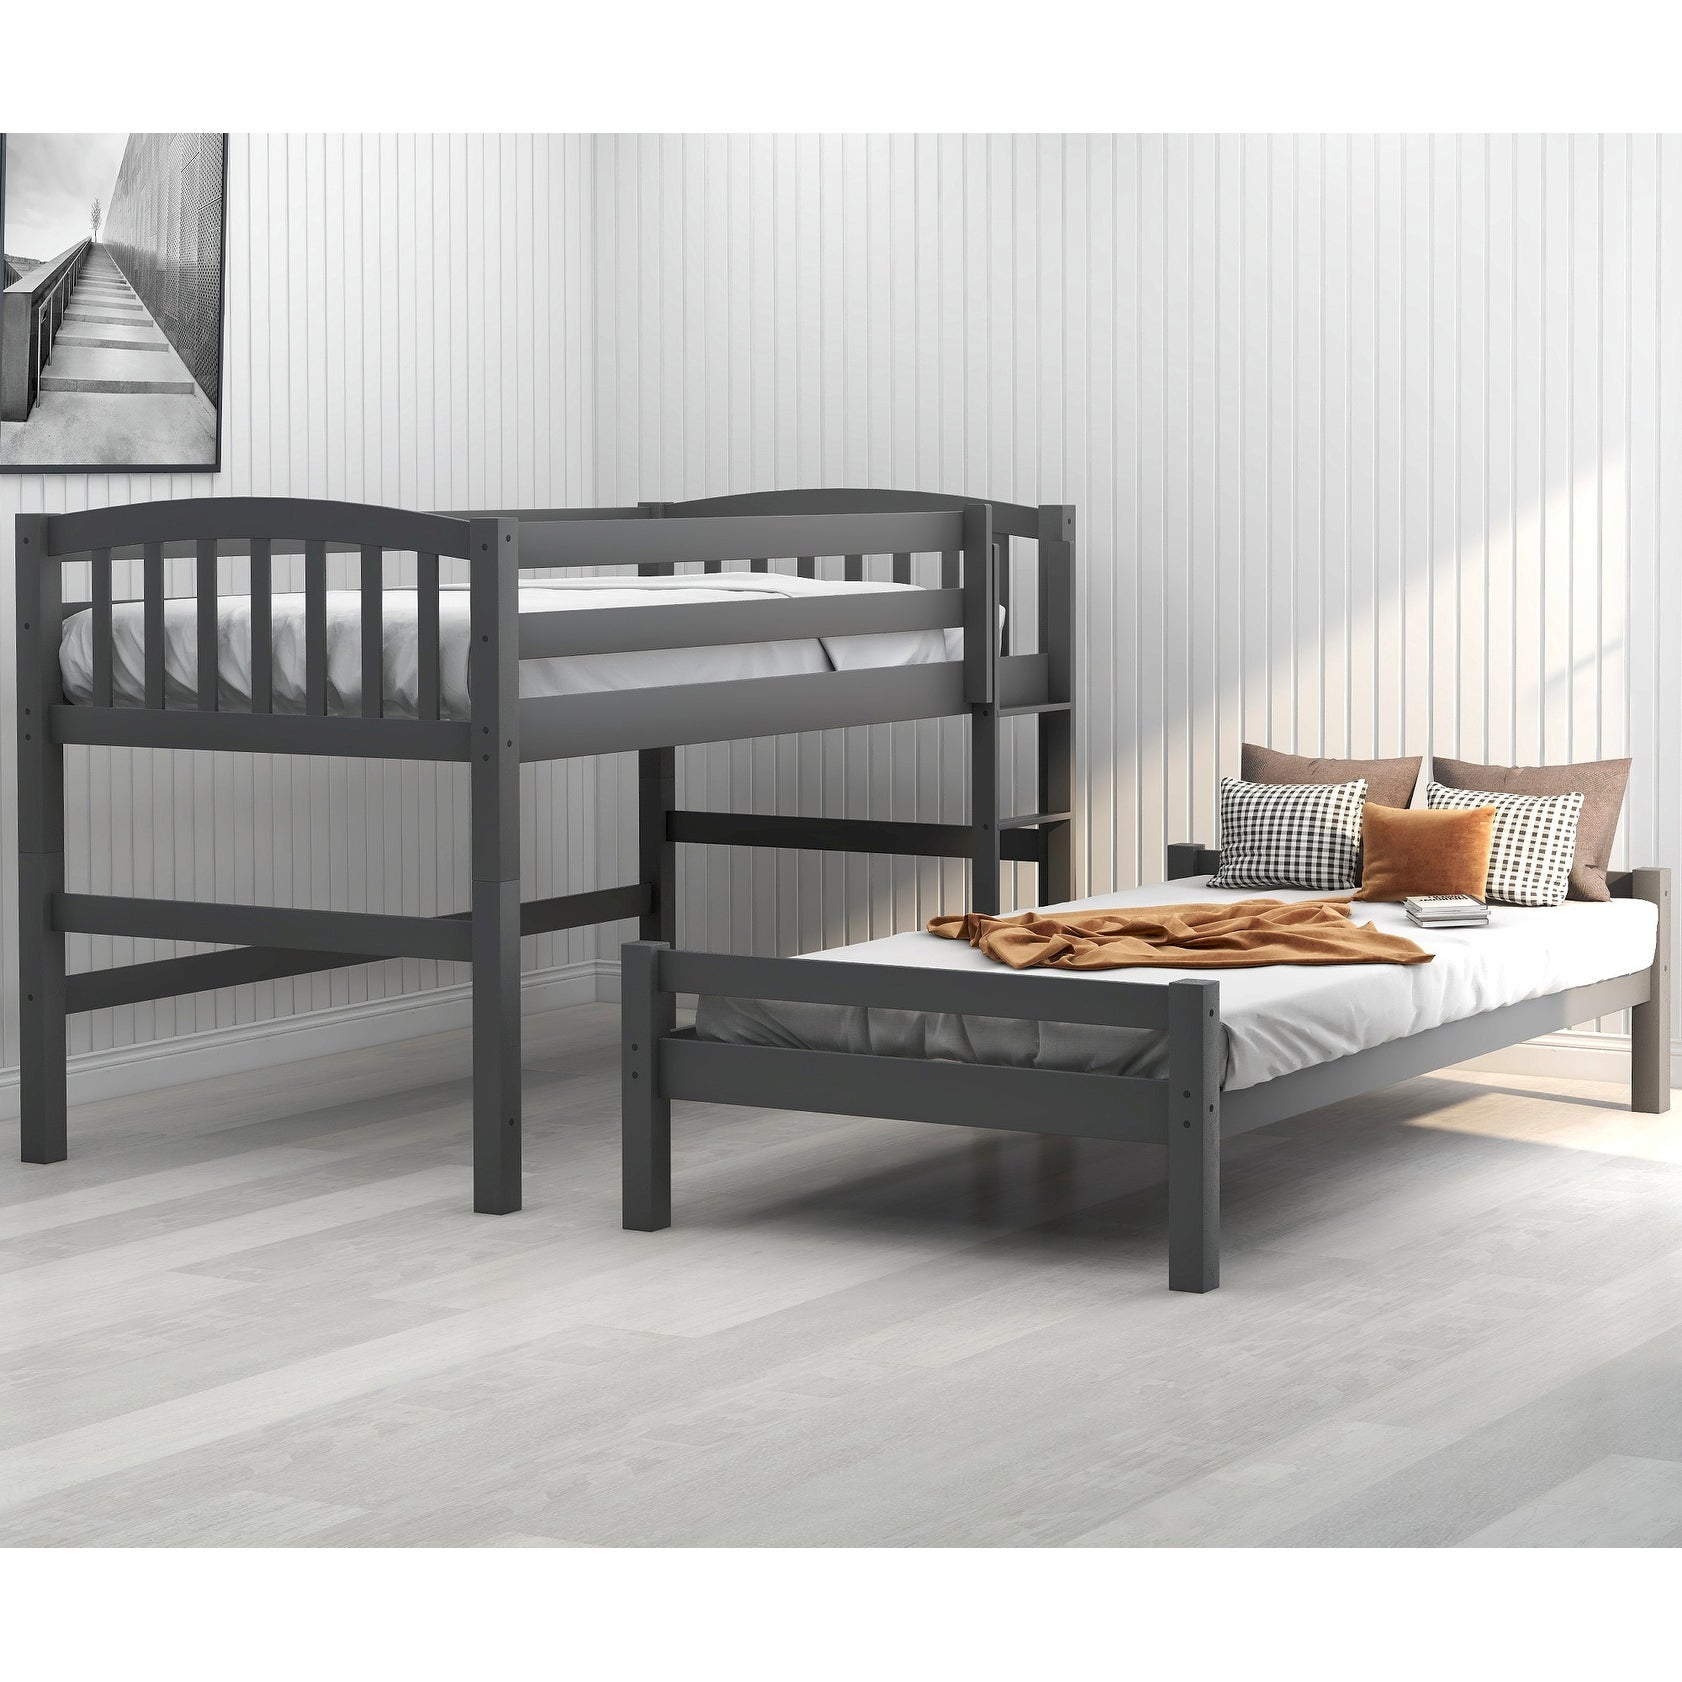 Twin Binne Over Bunk Loft Bed Overstock 32181294